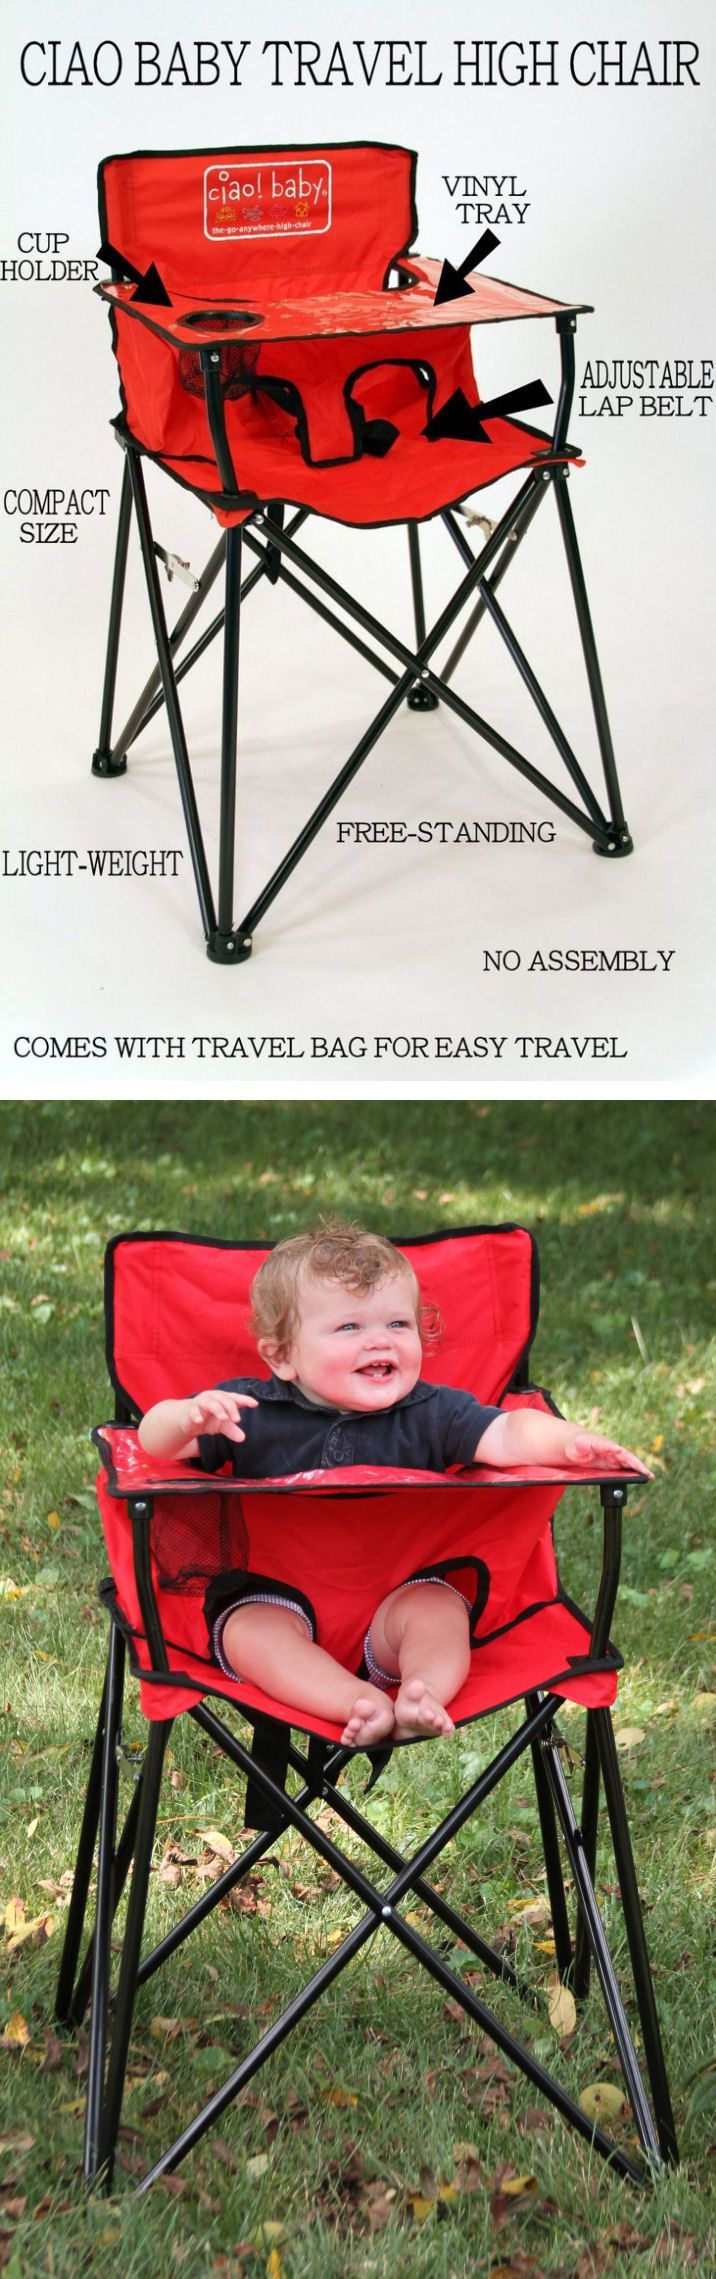 Portable Baby High Chair | Folds Up For Easy Travel. Great For Park, Camping, Restaurants & etc (scheduled via http://www.tailwindapp.com?utm_source=pinterest&utm_medium=twpin&utm_content=post144281005&utm_campaign=scheduler_attribution)